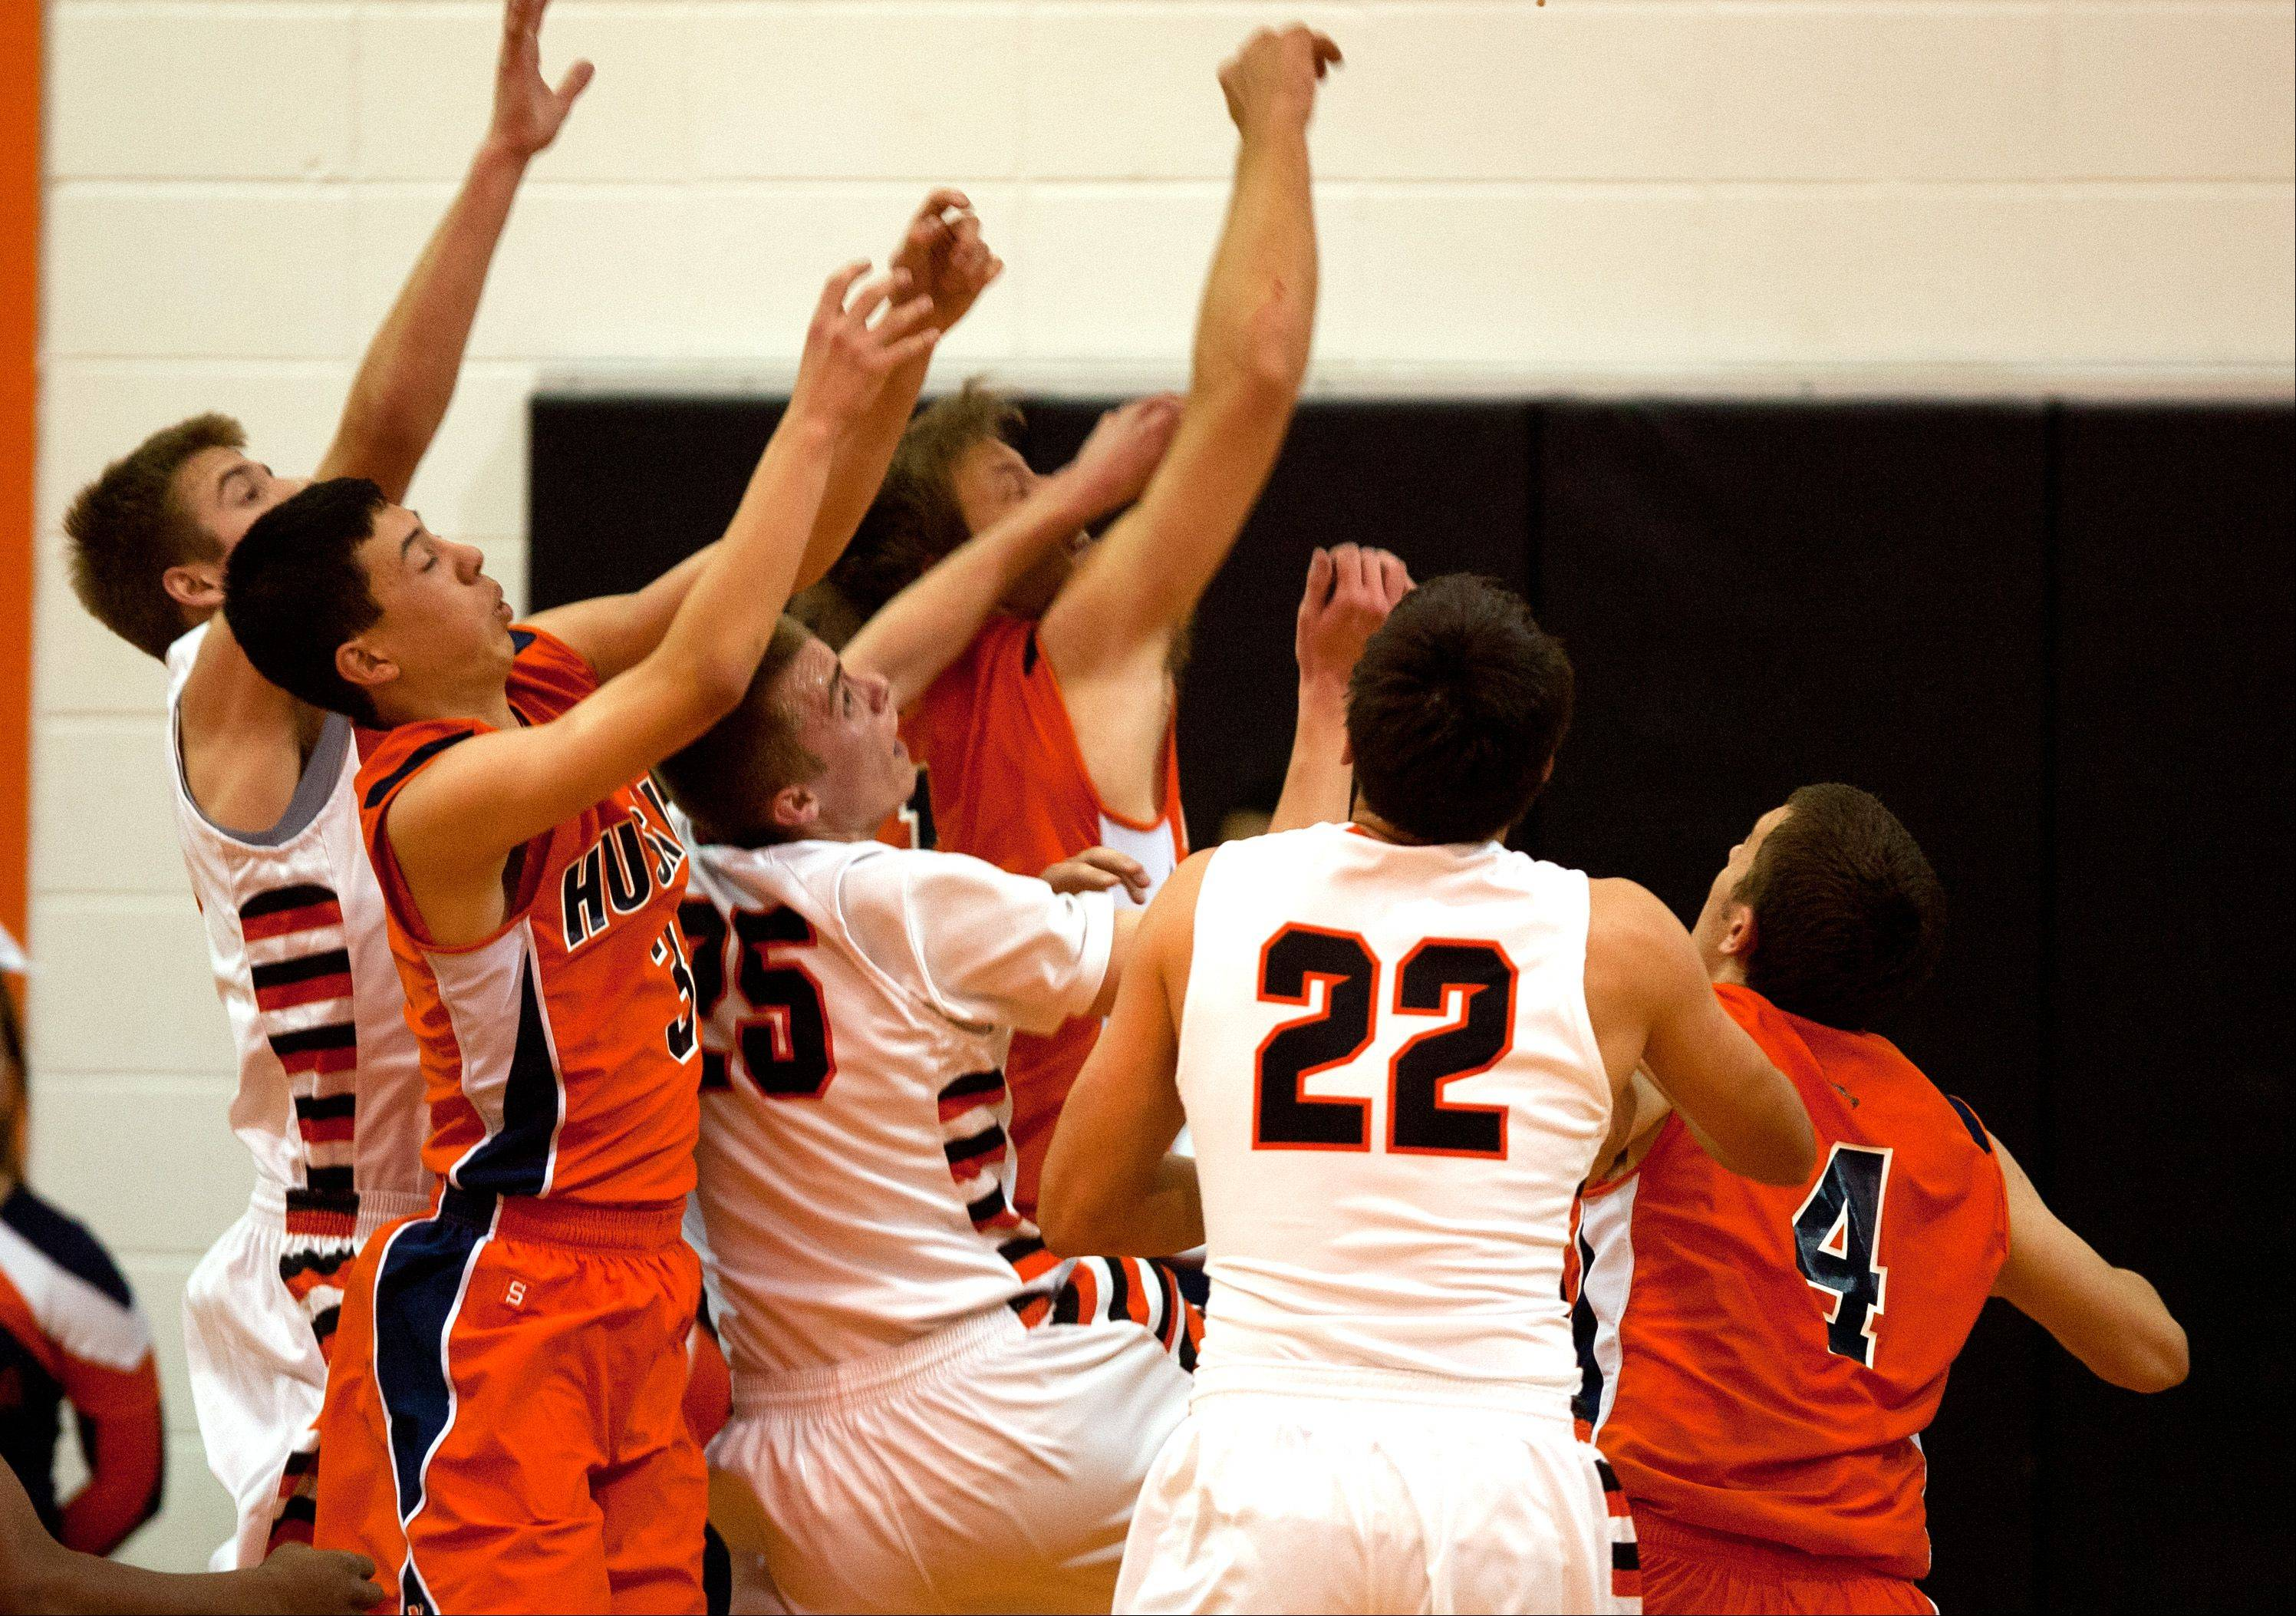 Naperville North and Wheaton Warrenville South players fight for a rebound during boys basketball action in Wheaton.